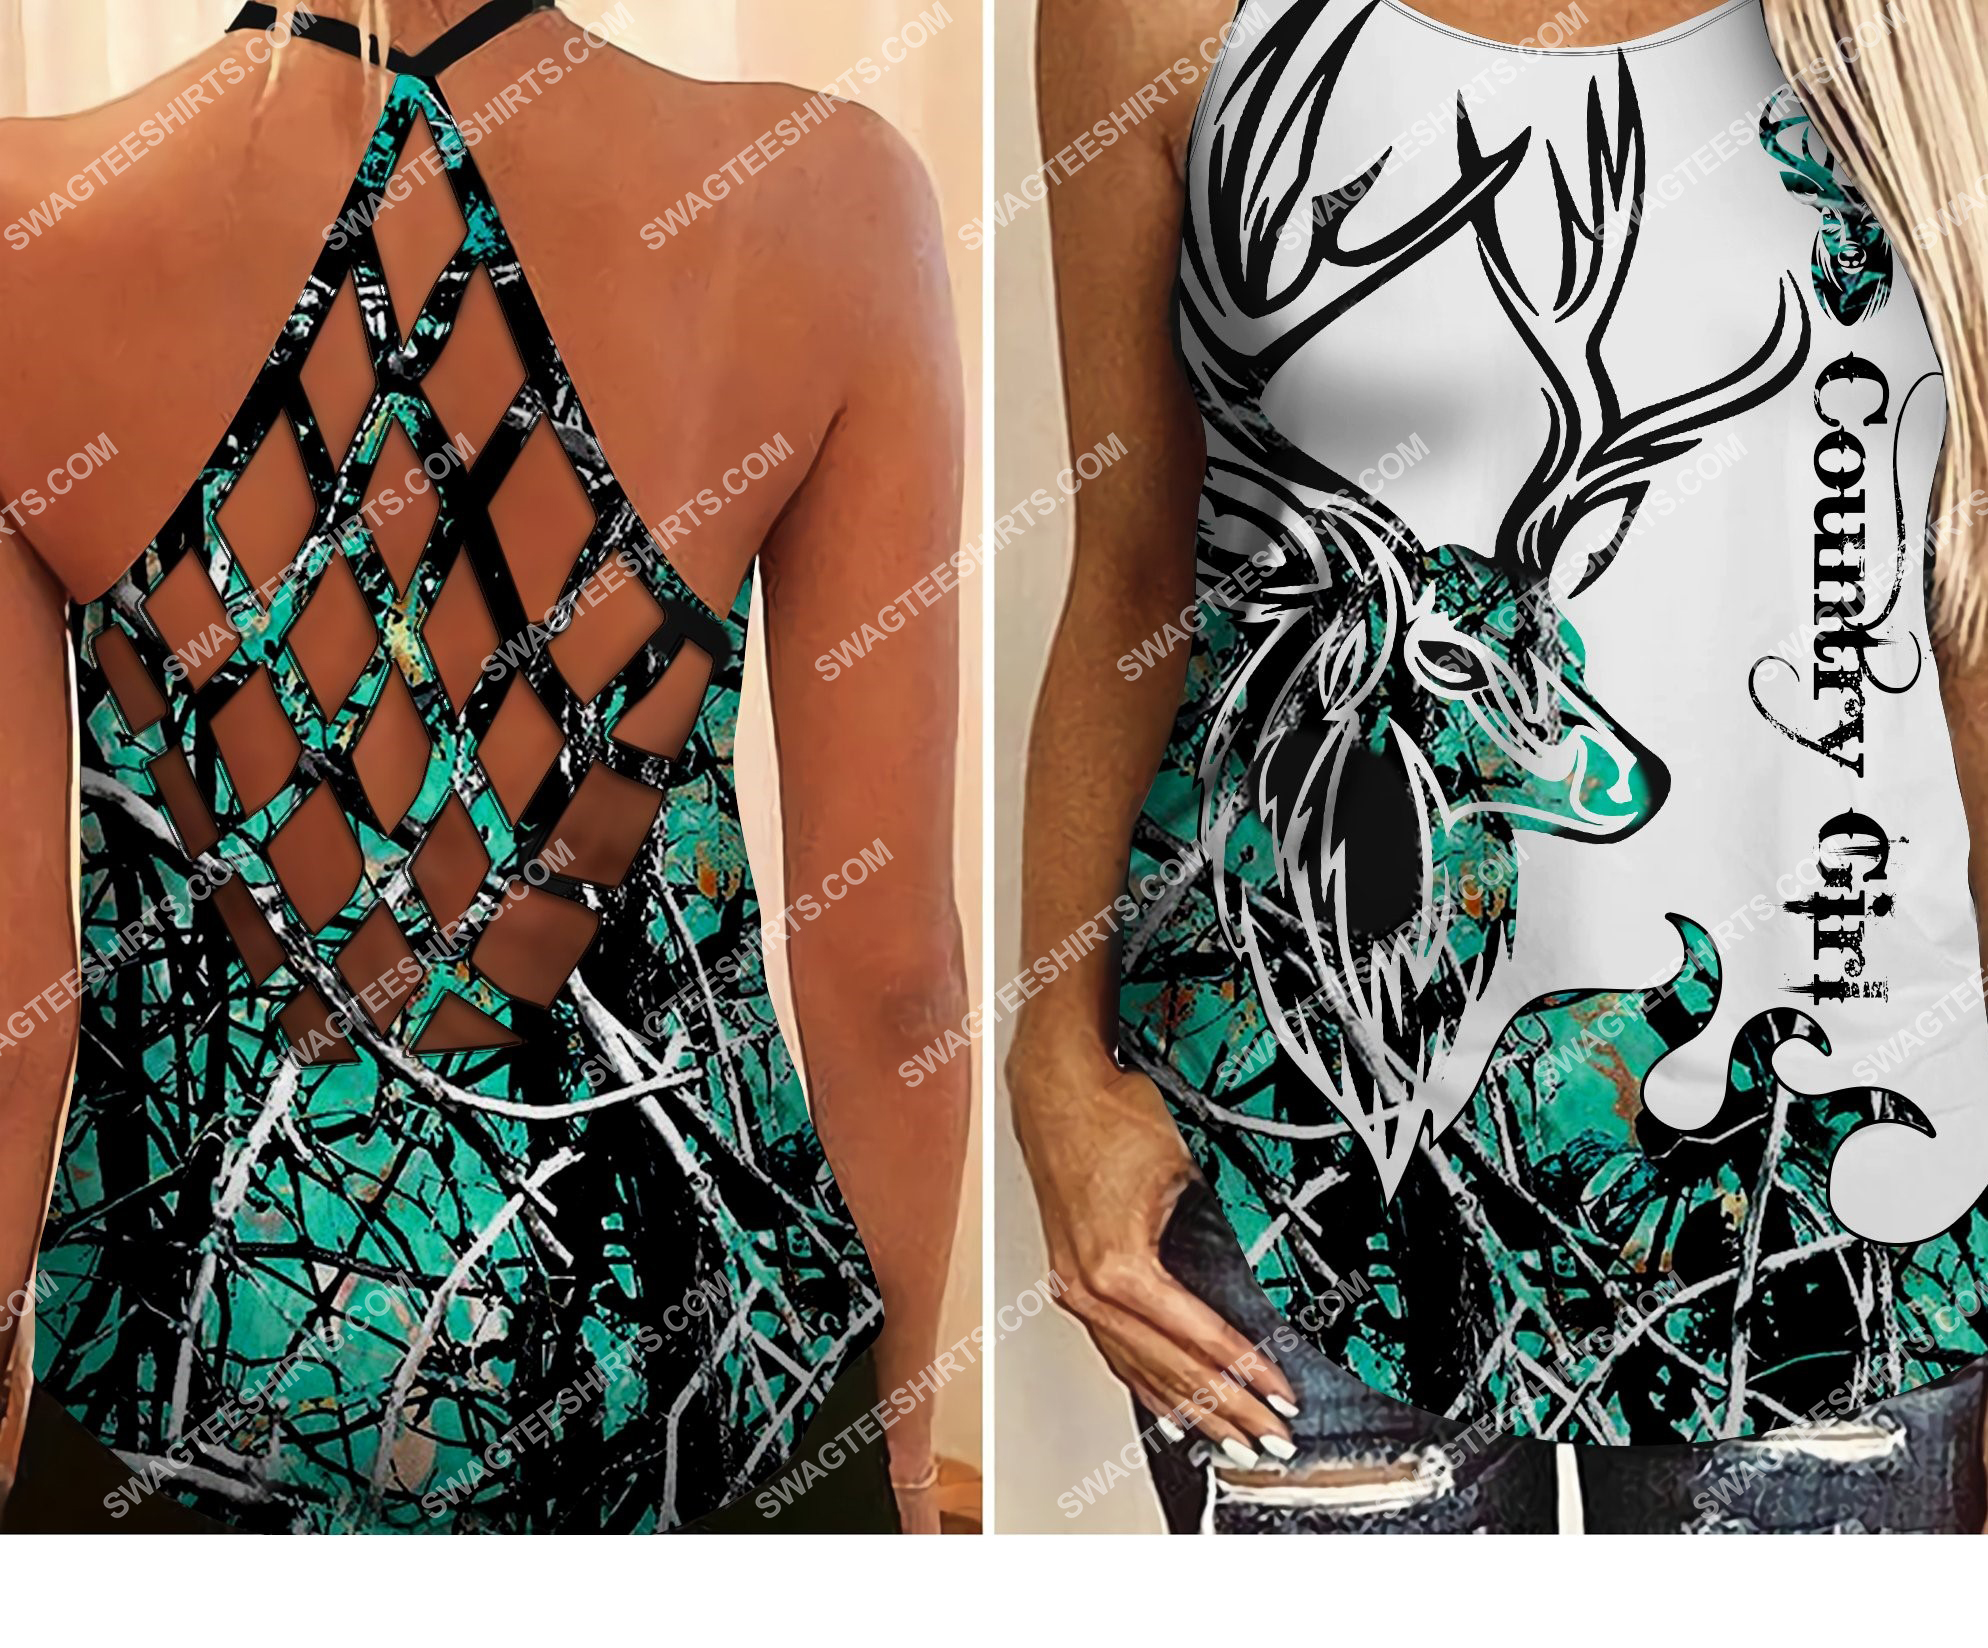 [Top-selling] deer hunting country girl  all over printed strappy back tank top - maria